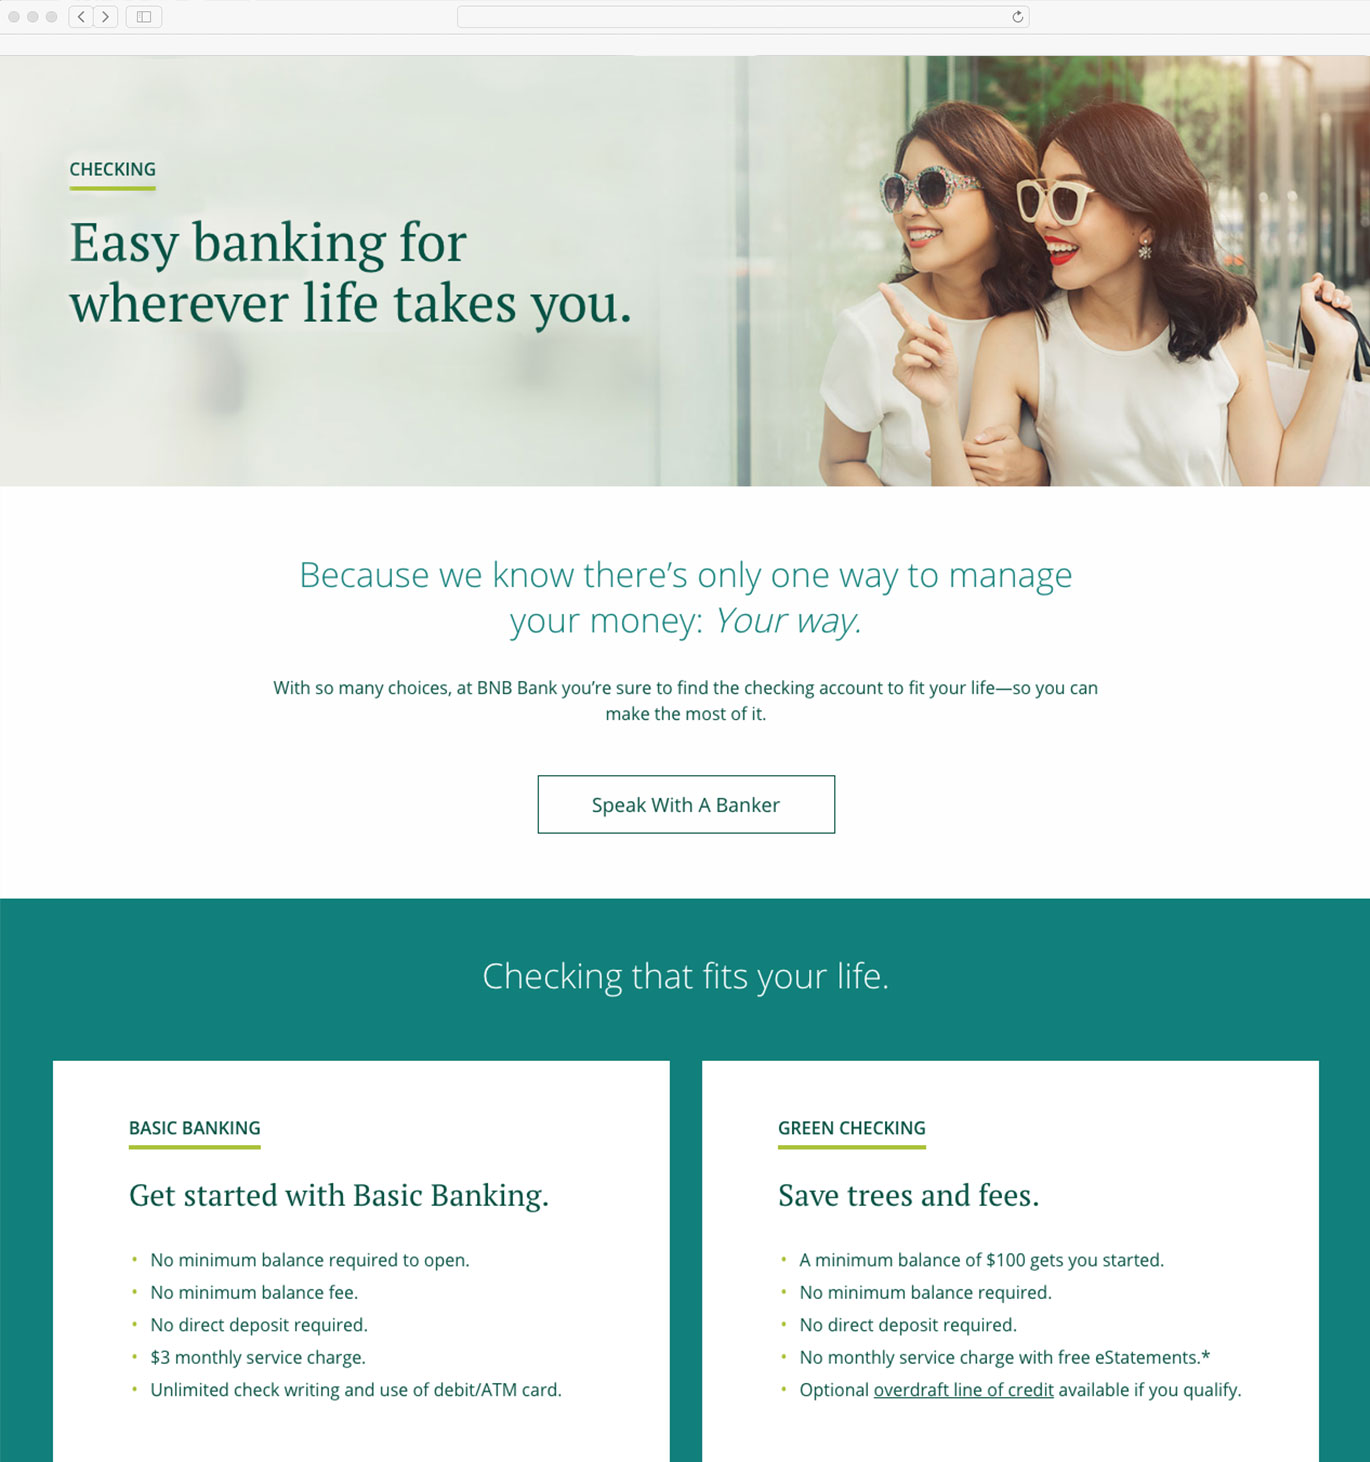 BNB Bank website